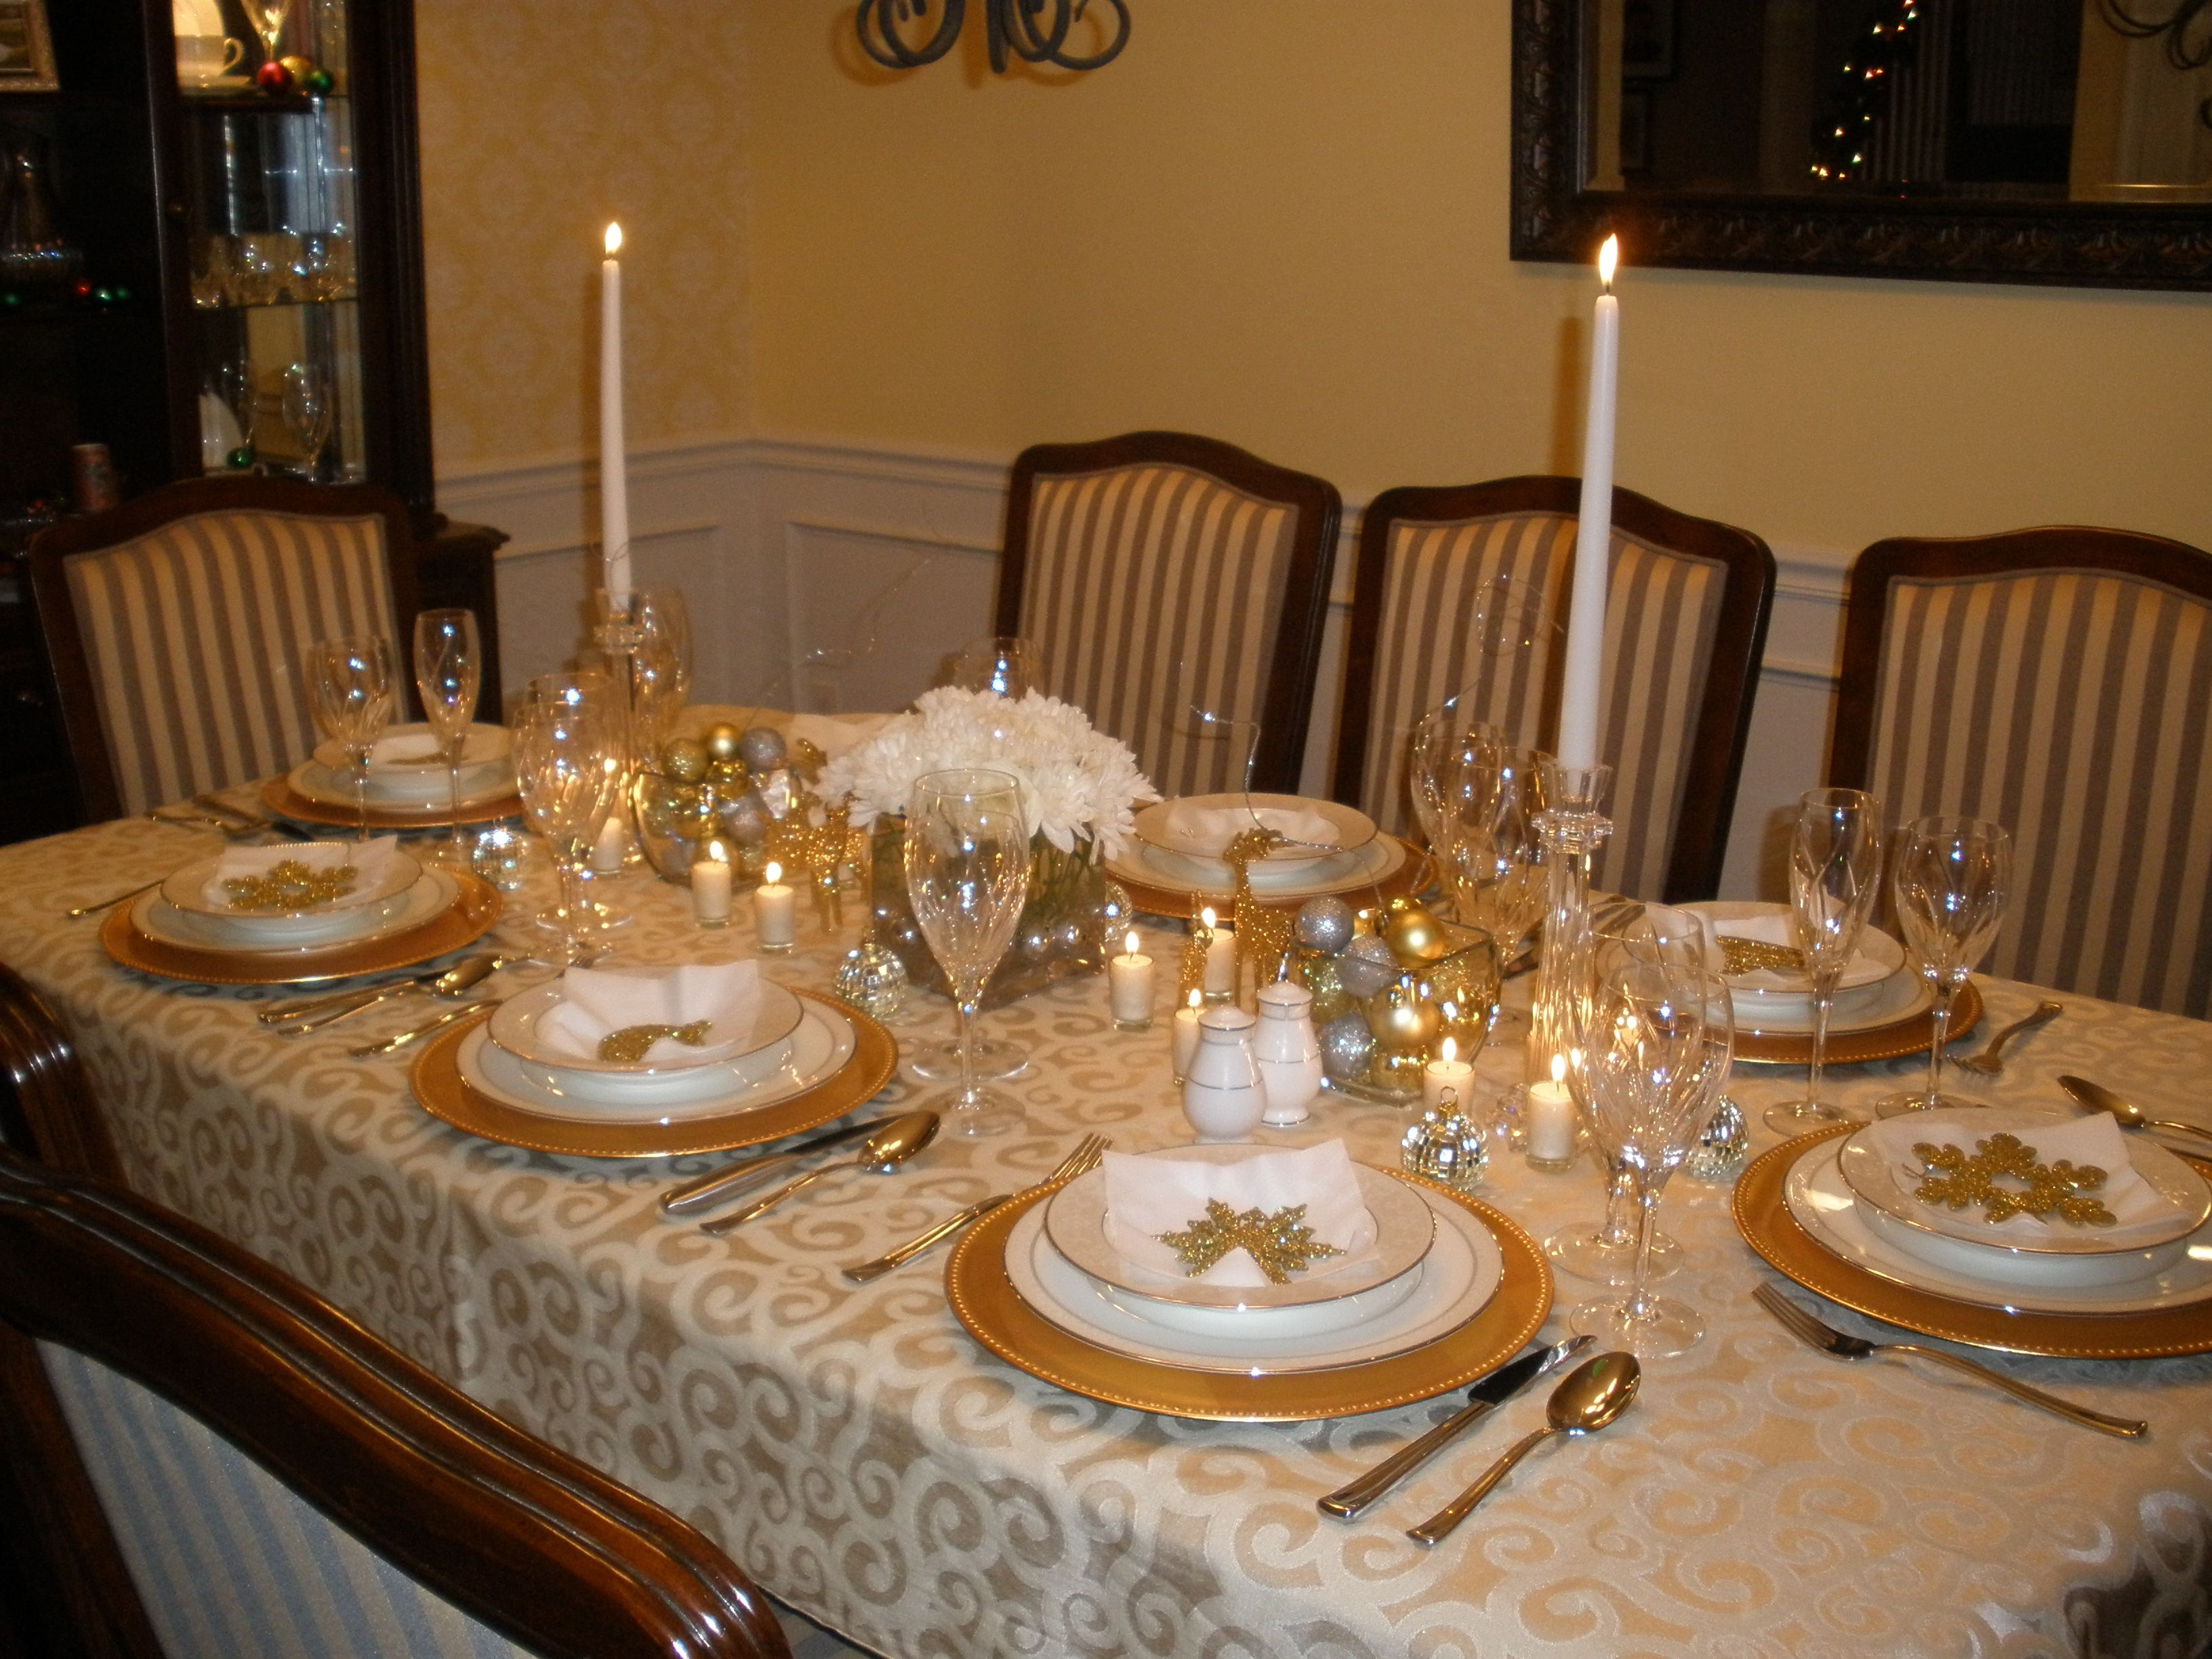 Gold and Silver Christmas table setting & Gold and Silver Christmas table setting | Holidays - Christmas ...